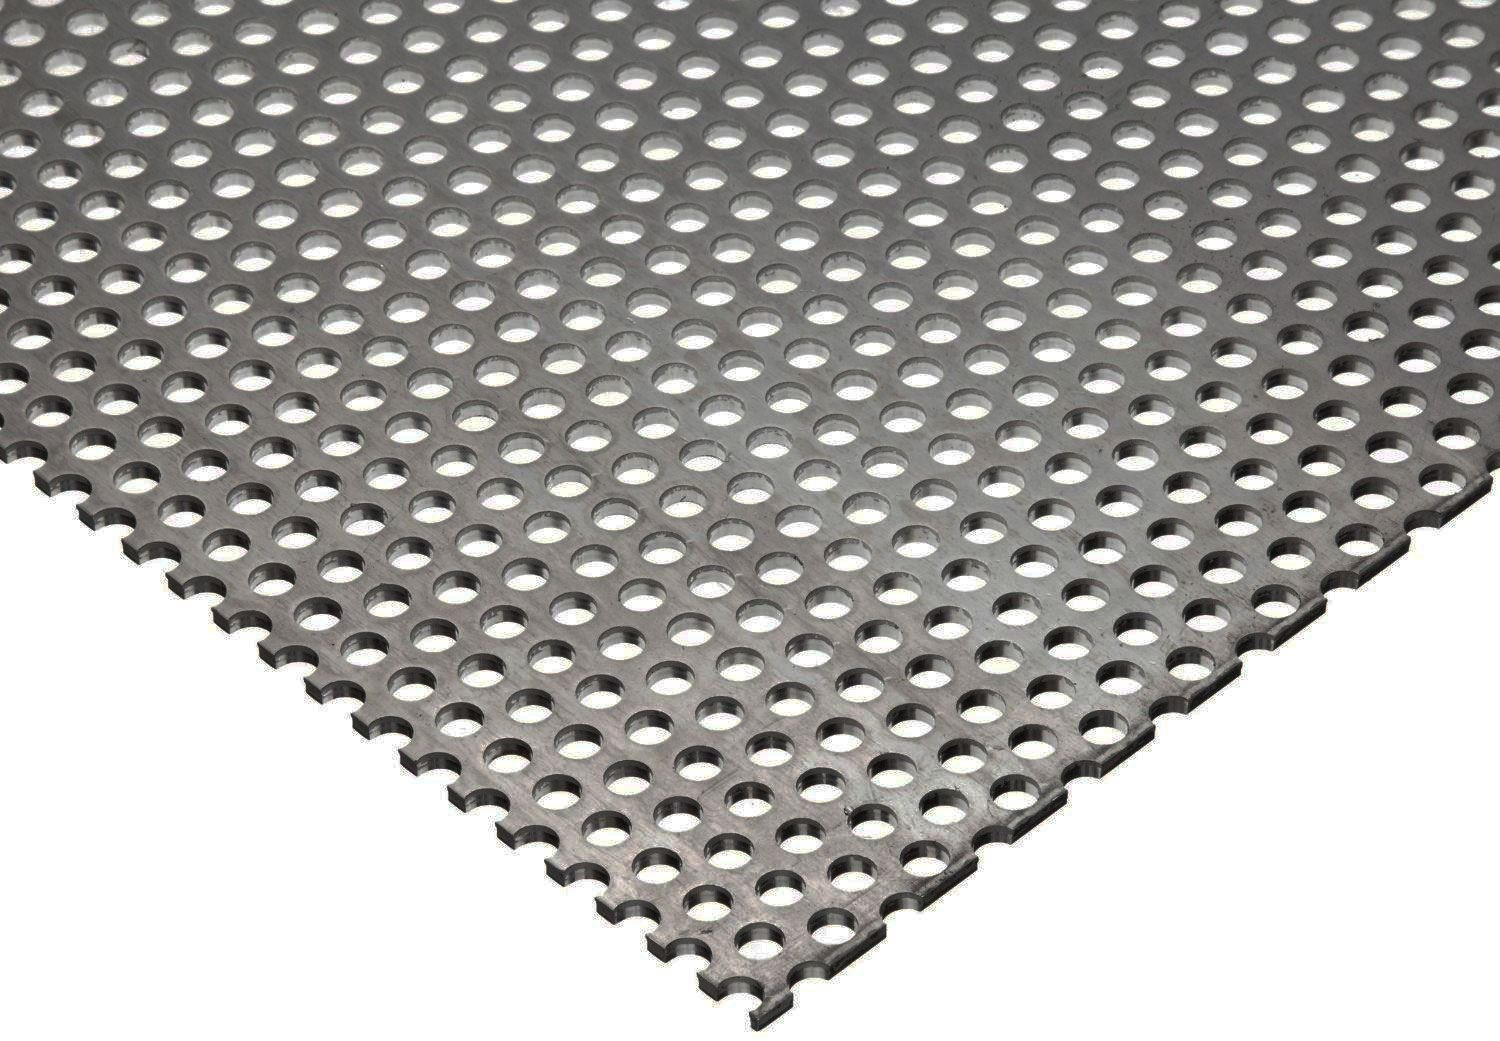 Online Metal Supply 304 Stainless Steel Perforated Sheet, Thickness: 0.035 (20 ga.), Width: 24', Length: 48', Hole Size: 0.125 (1/8), Staggered 0.188 (3/16) Width: 24 Length: 48